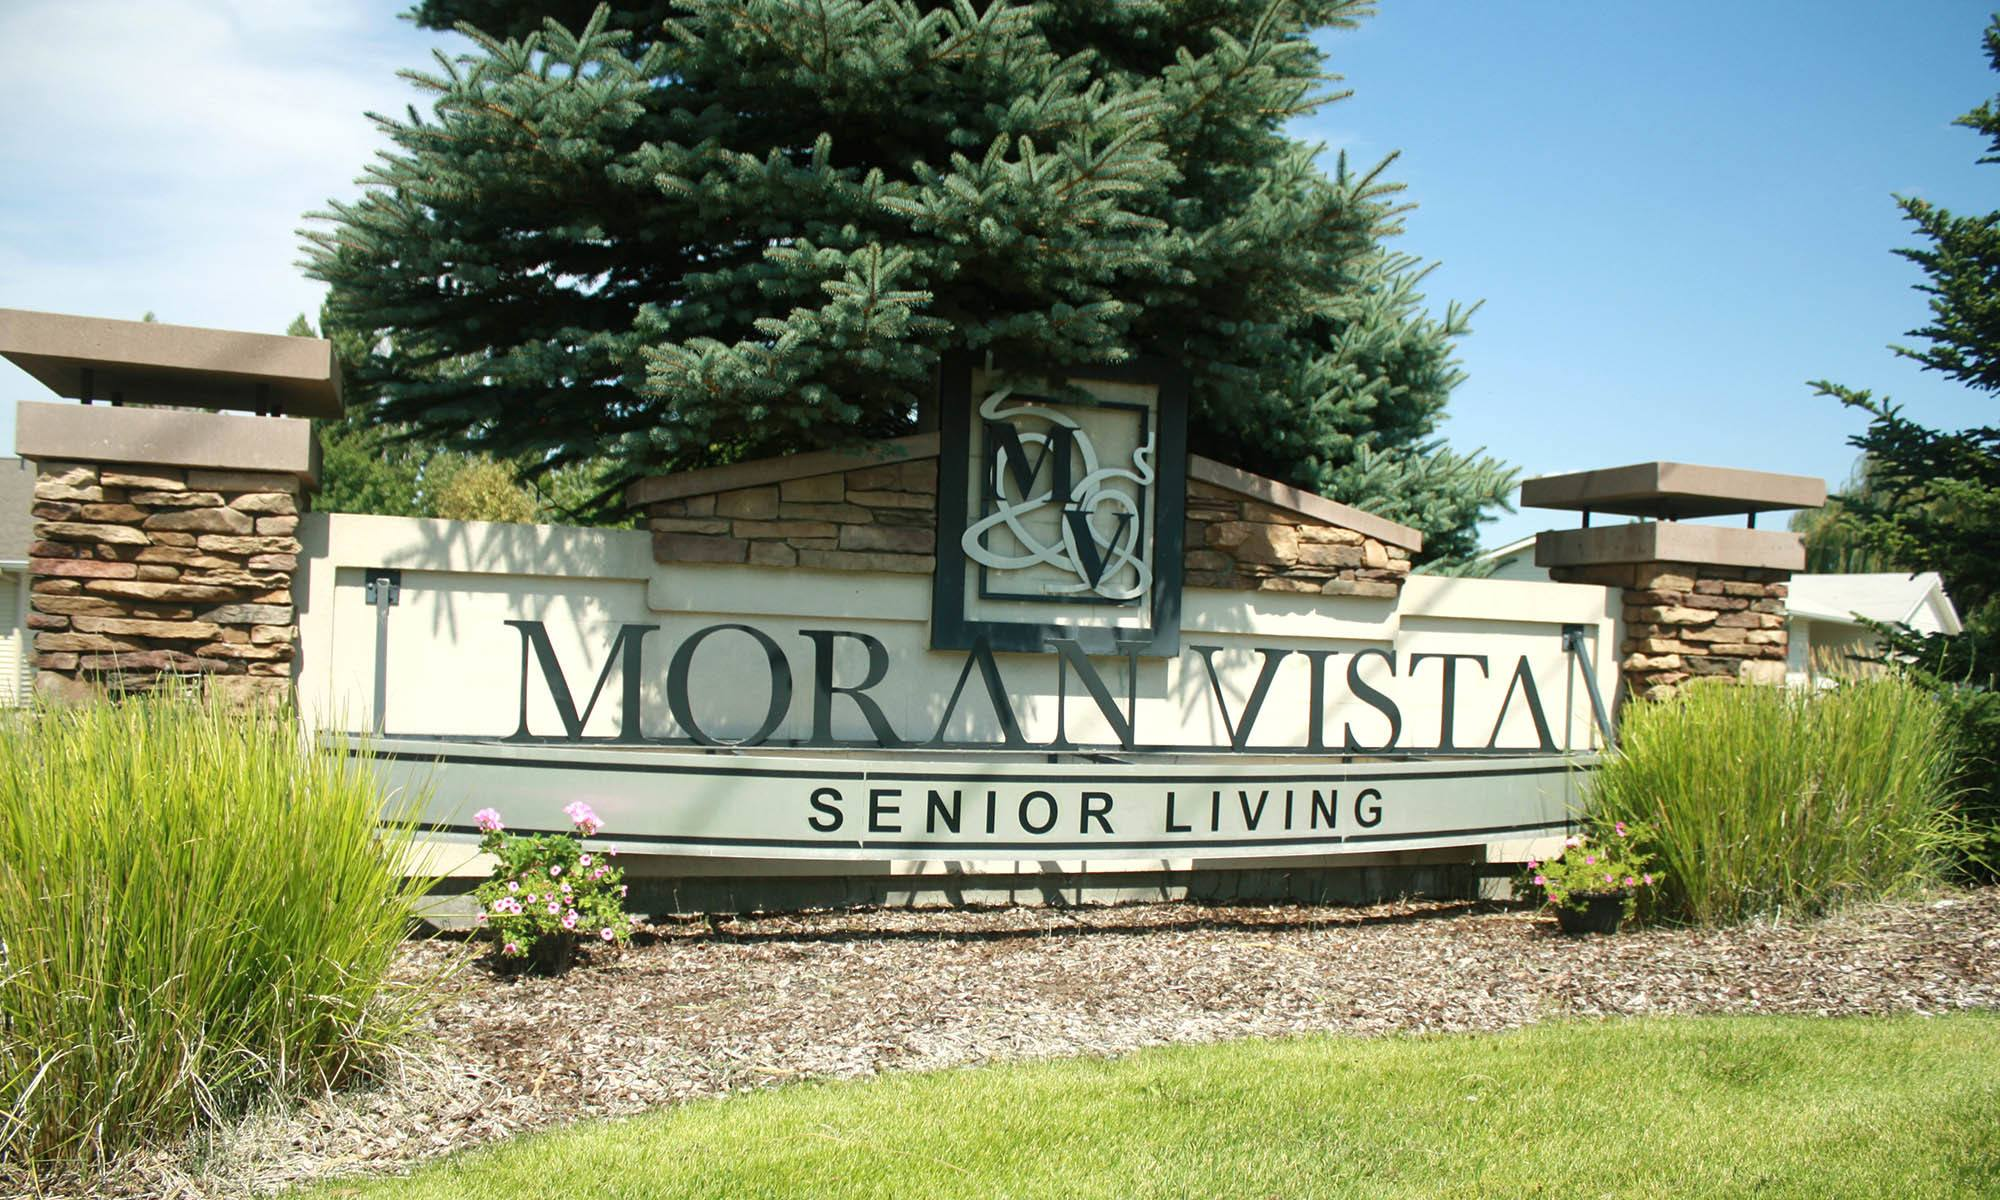 Welcome to Moran Vista in Spokane